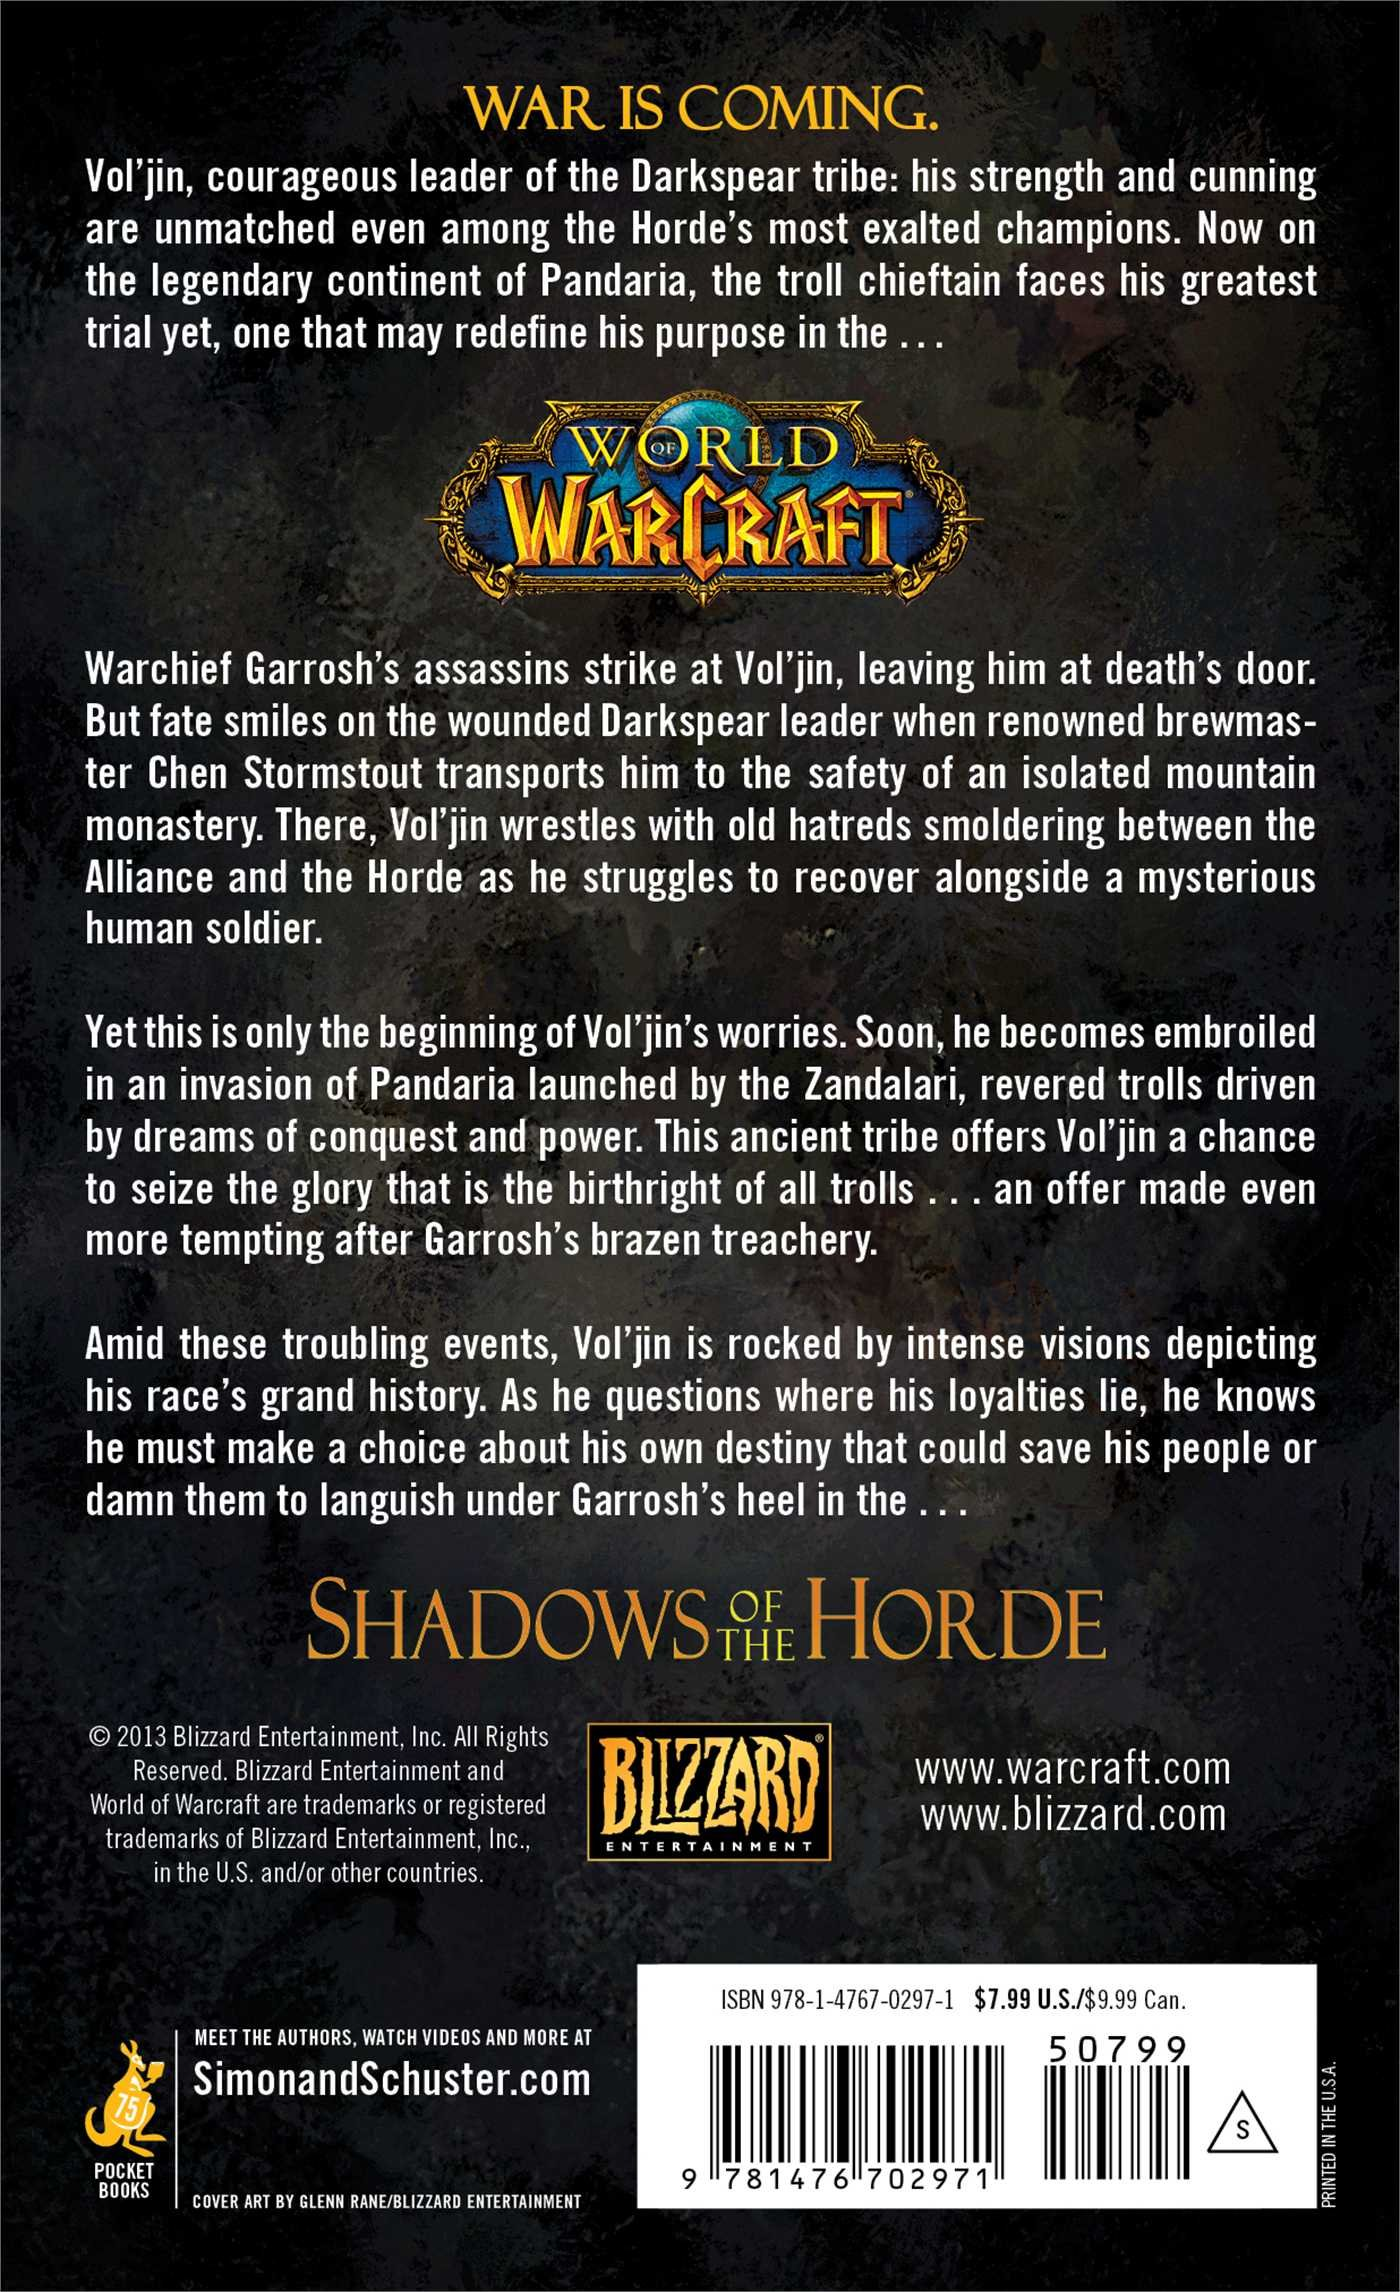 World Of Warcraft: Vol'jin: Shadows Of The Horde: Michael A Stackpole:  9781476702971: Amazon: Books